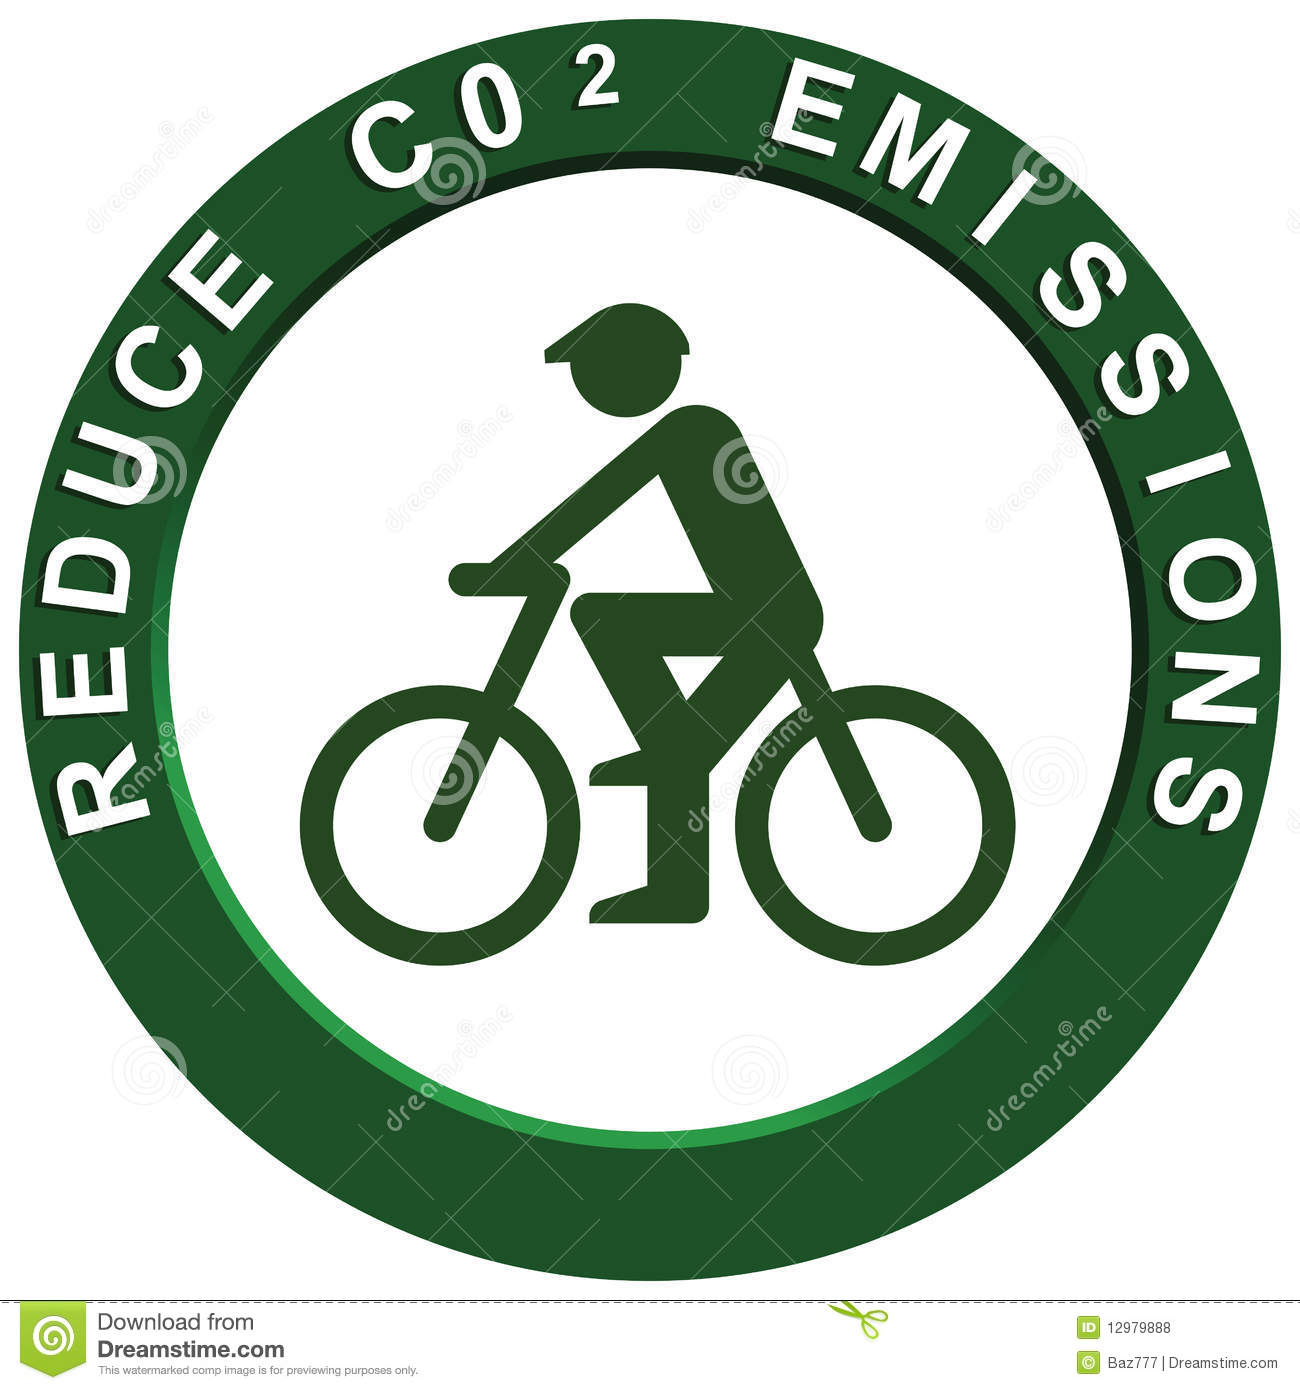 Greenhouse gas and ecological footprint